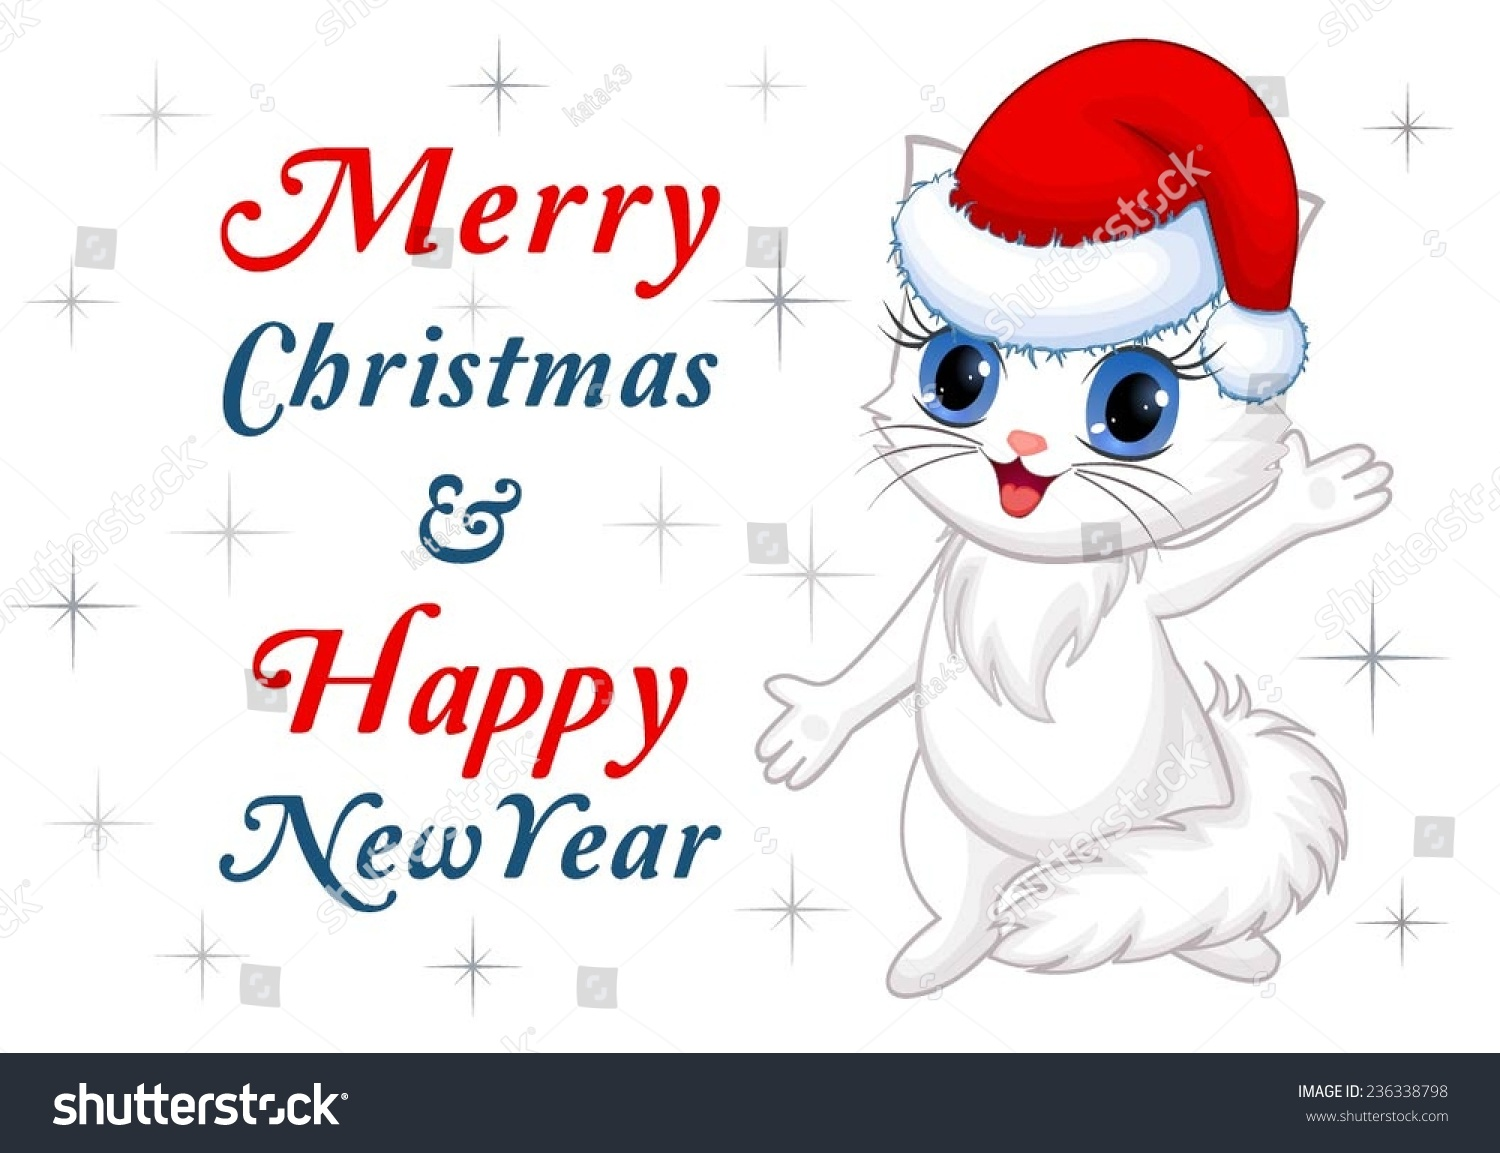 merry christmas happy new year card with cute cat